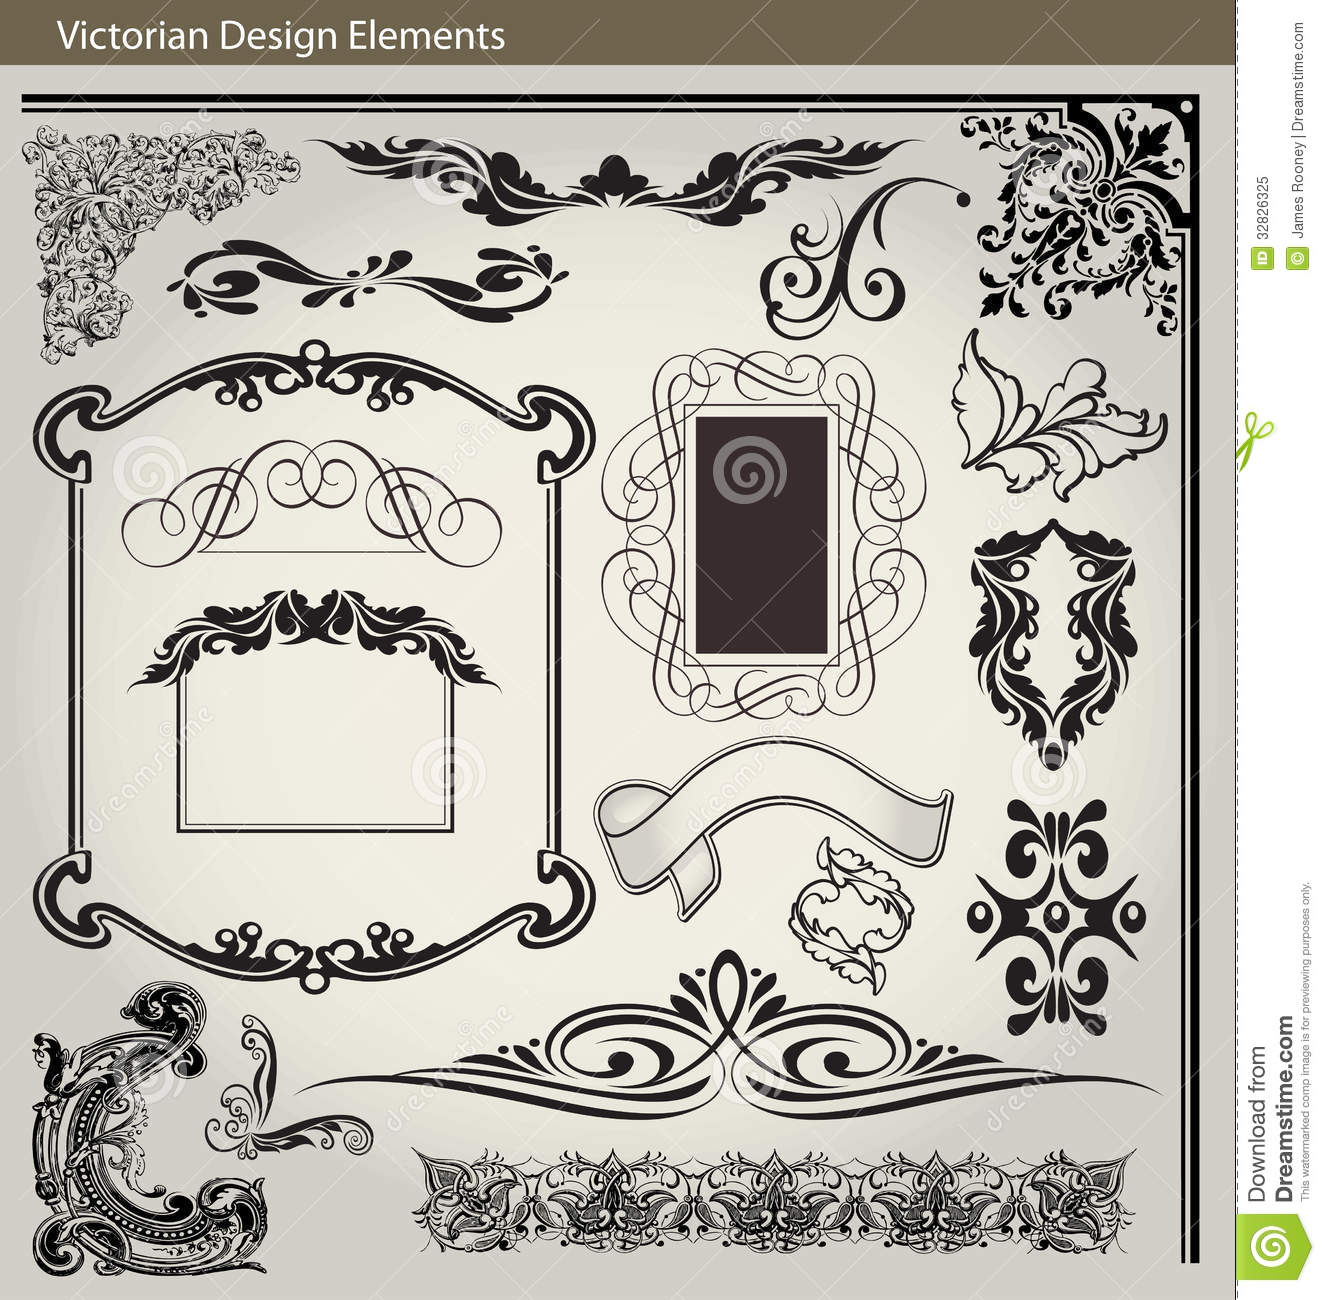 Victorian Design Elements victorian design elements royalty free stock photo - image: 32826325